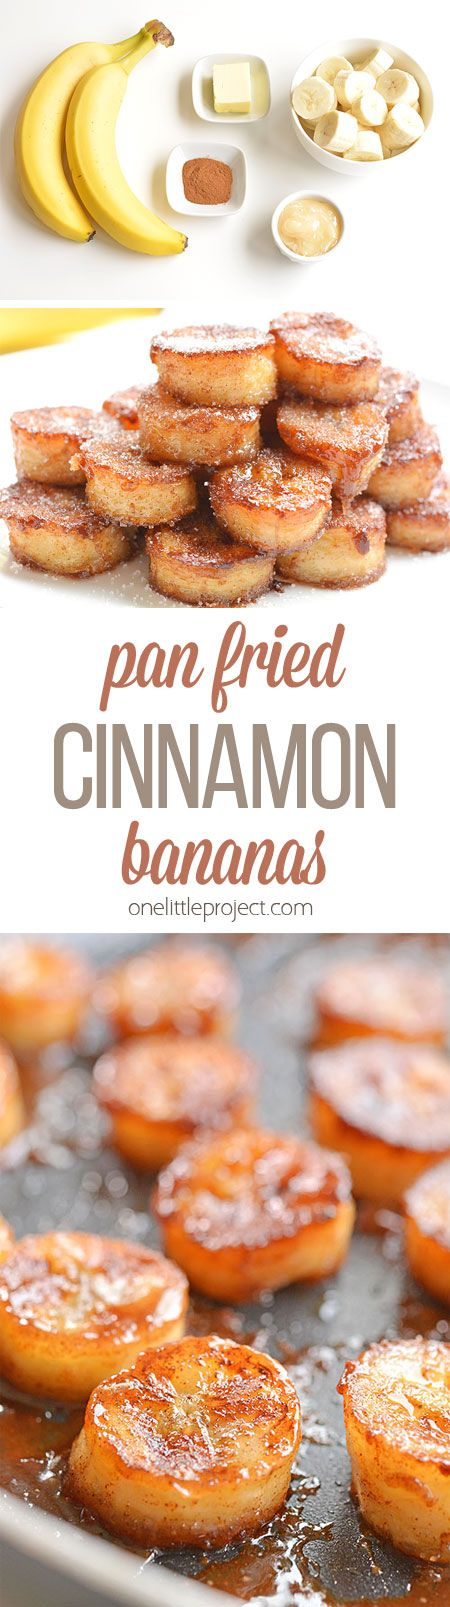 These pan fried cinnamon bananas are so easy to make and taste SO GOOD! They're…